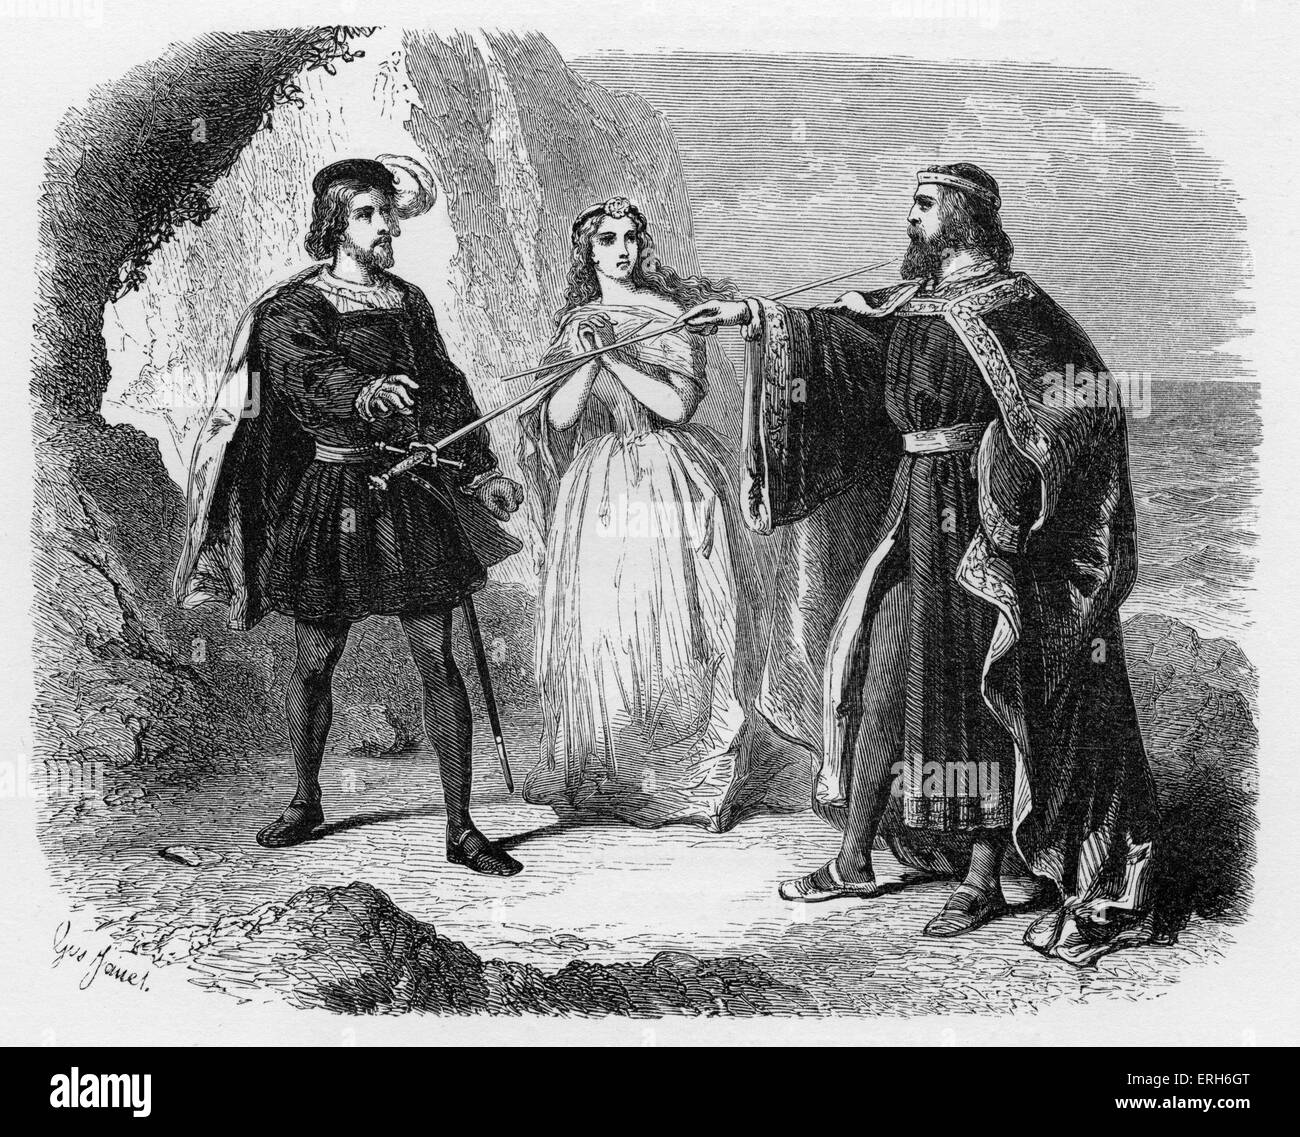 the tempest william shakespeare 1 The tempest study guide contains a biography of william shakespeare, literature essays, a complete e-text, quiz questions, major themes, characters, and a full summary and analysis.